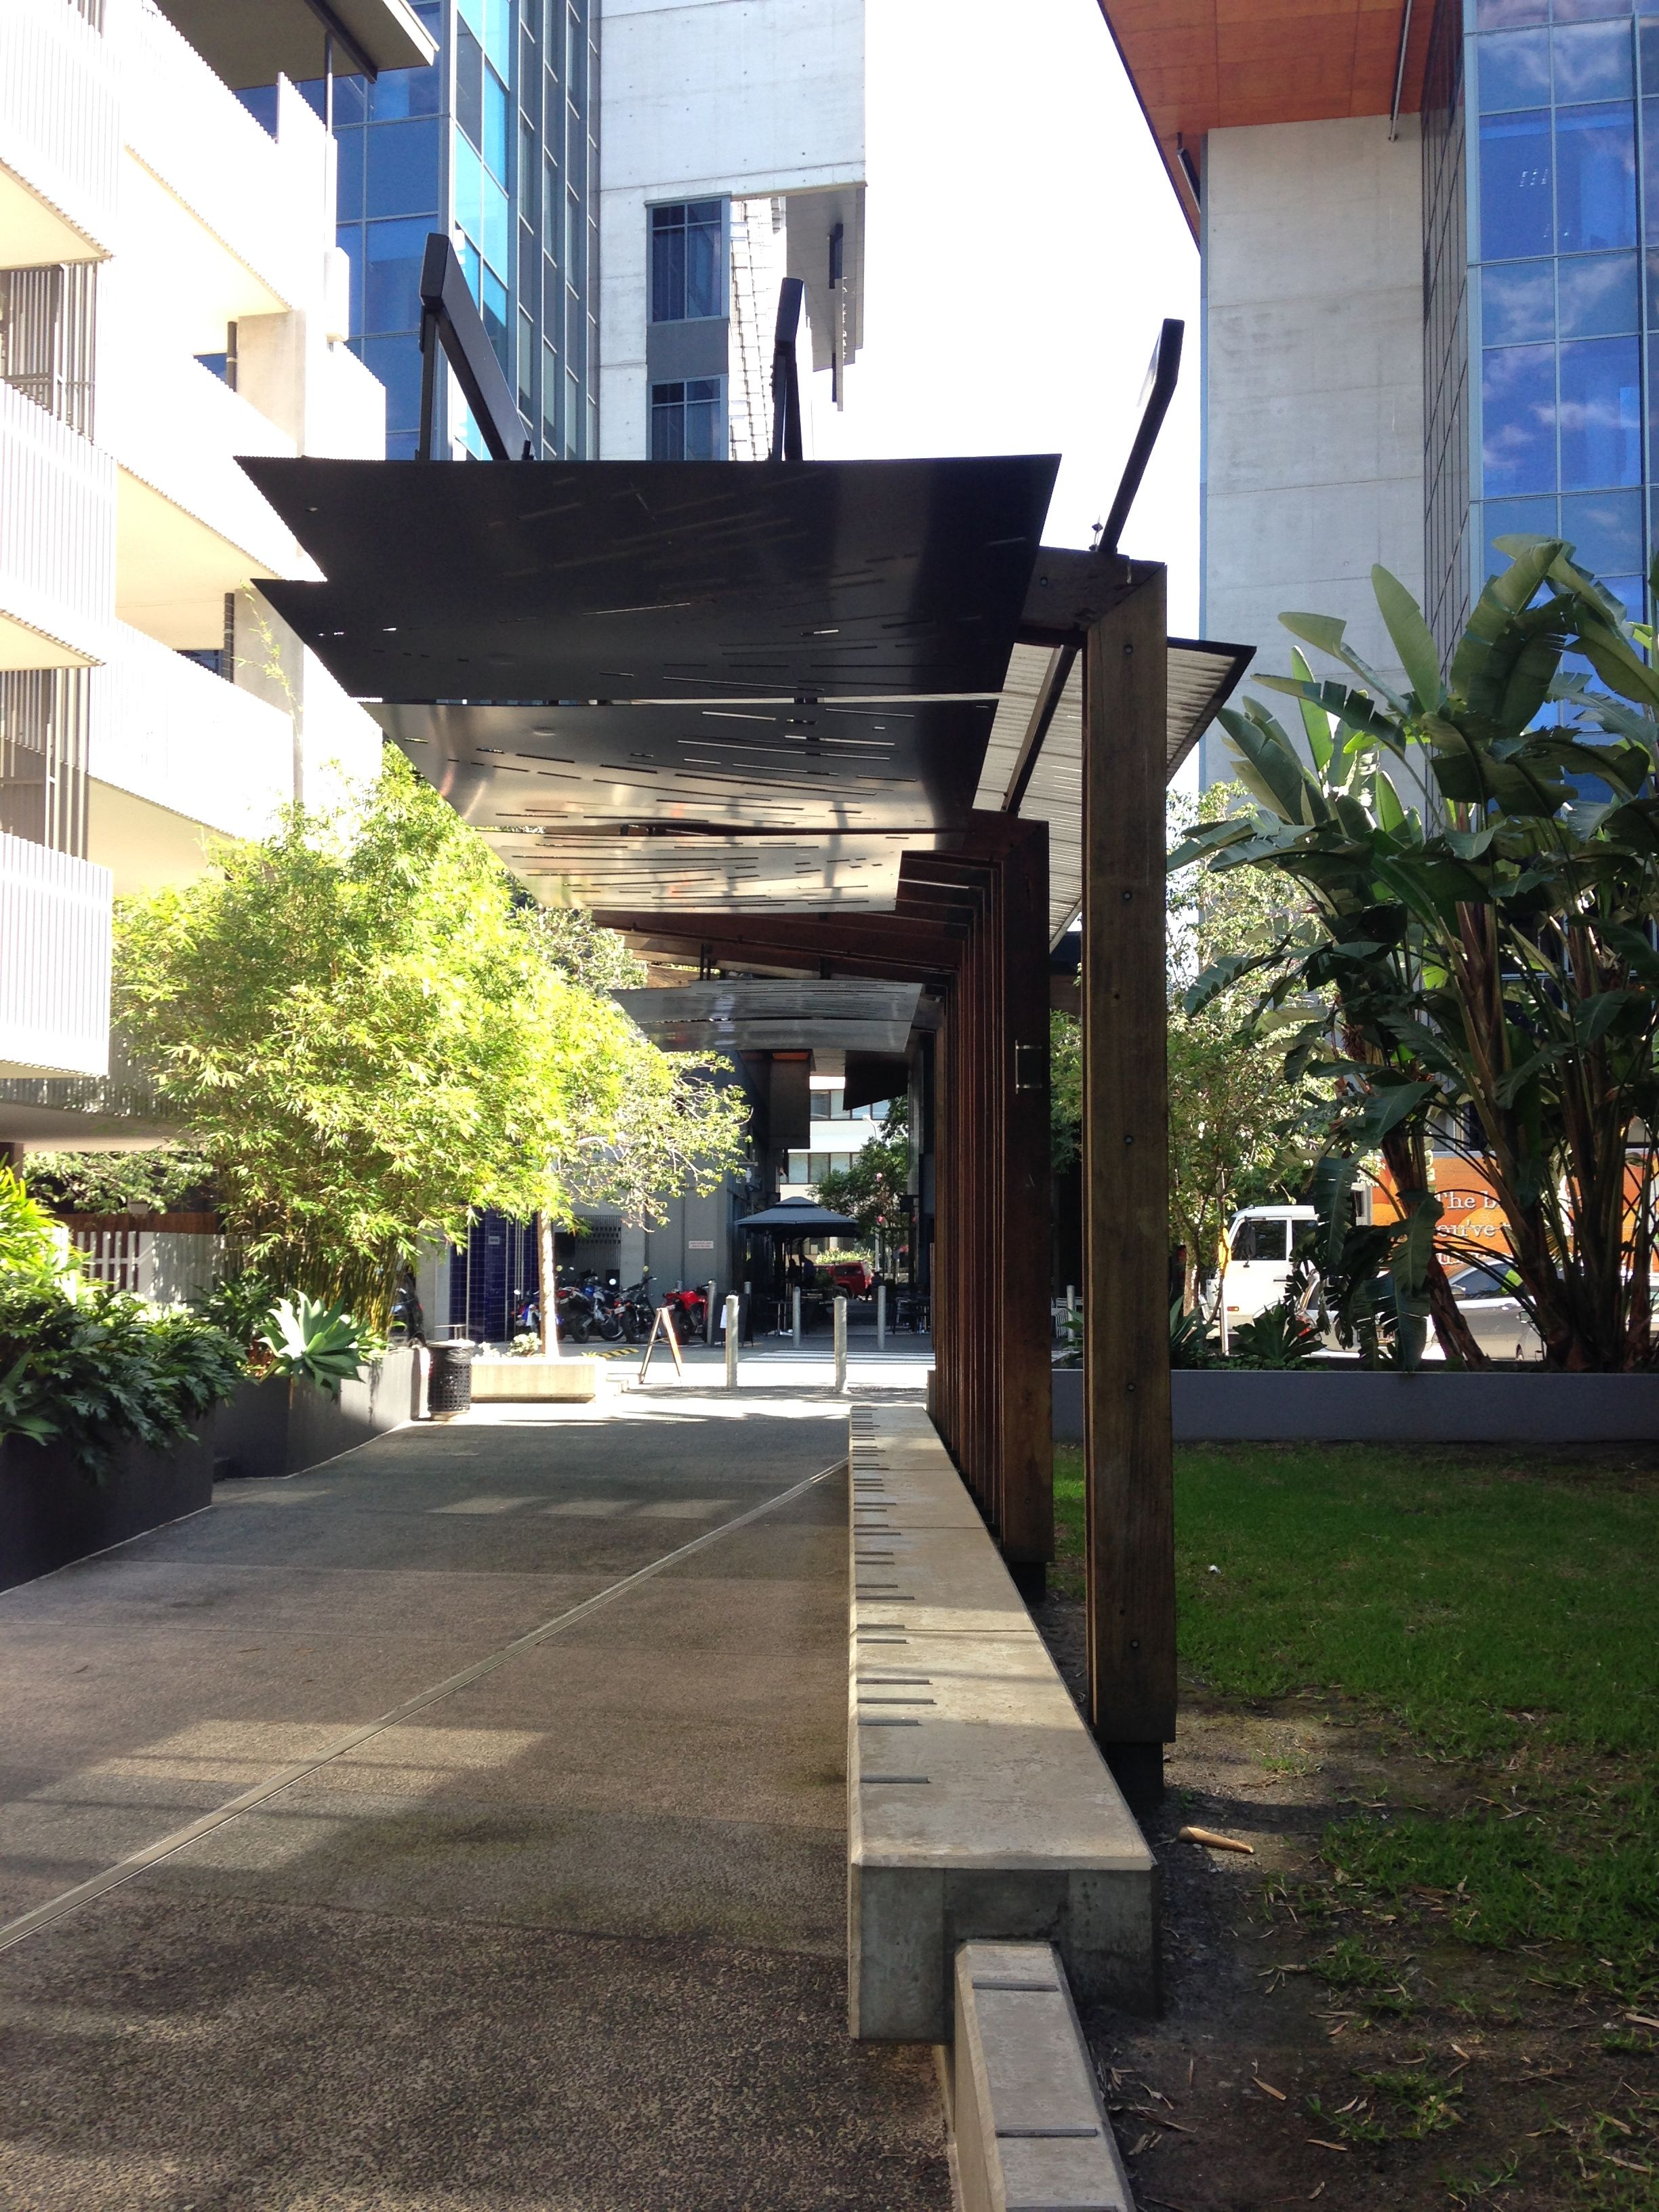 Public Canopies offer shelter and overhead protection in a